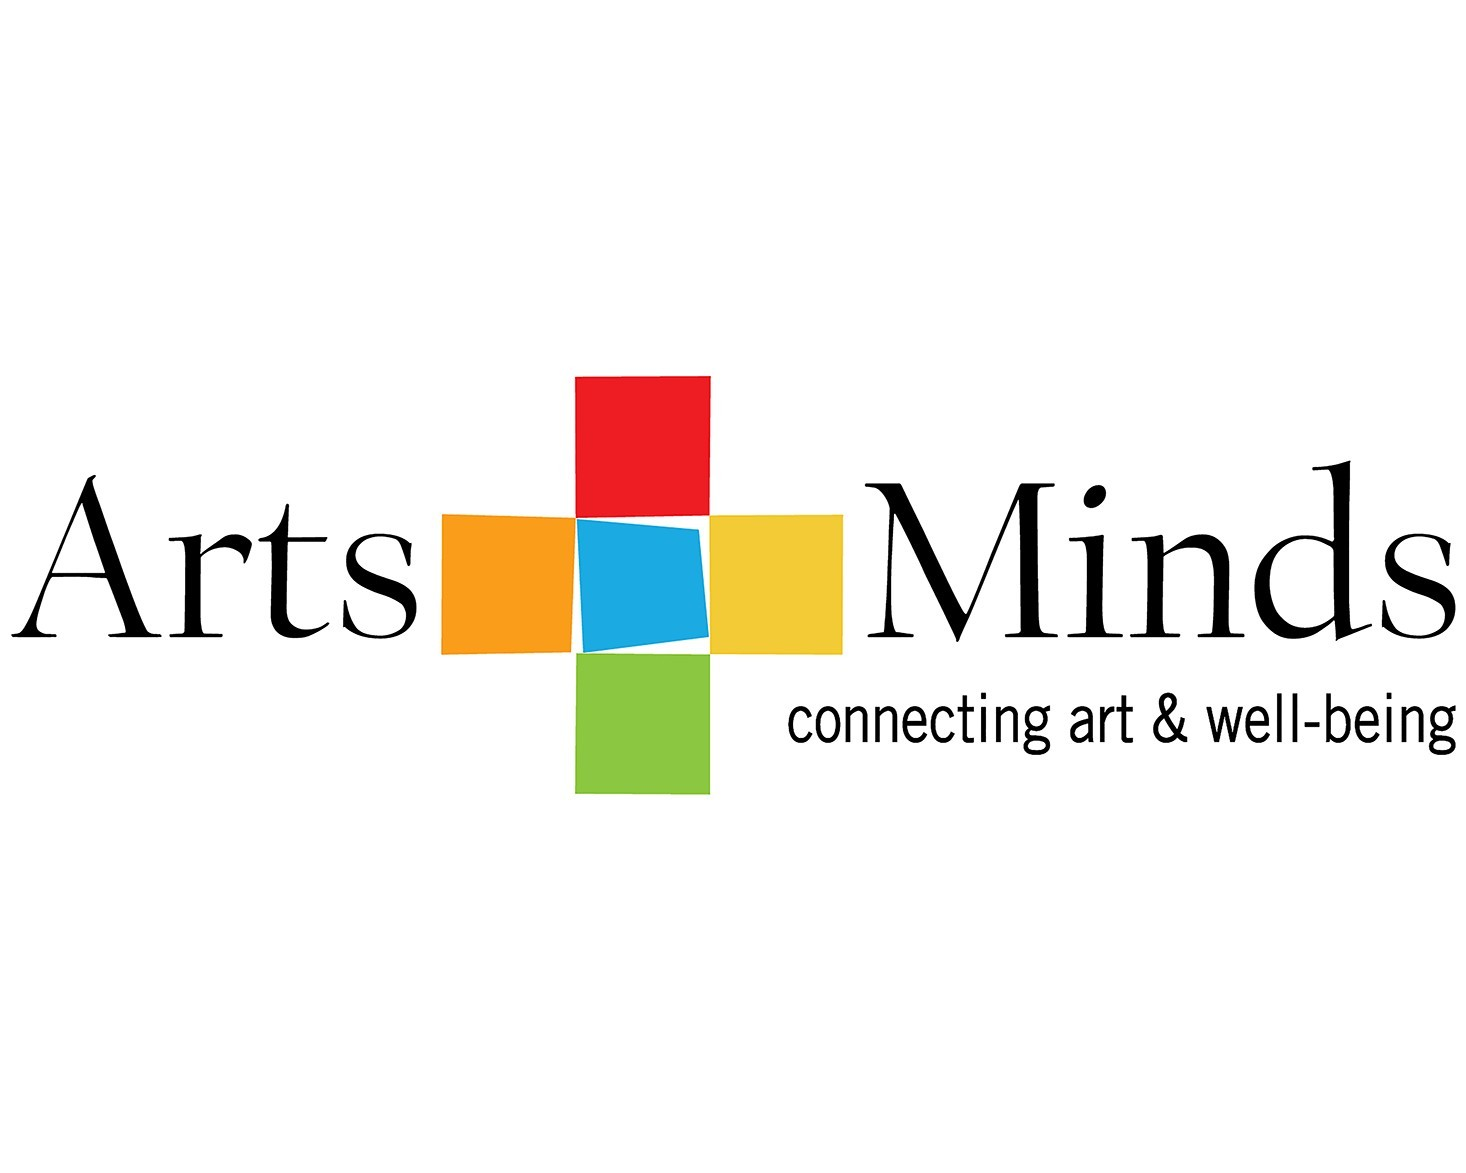 Arts & Minds: Connecting Art & Well-Being logo